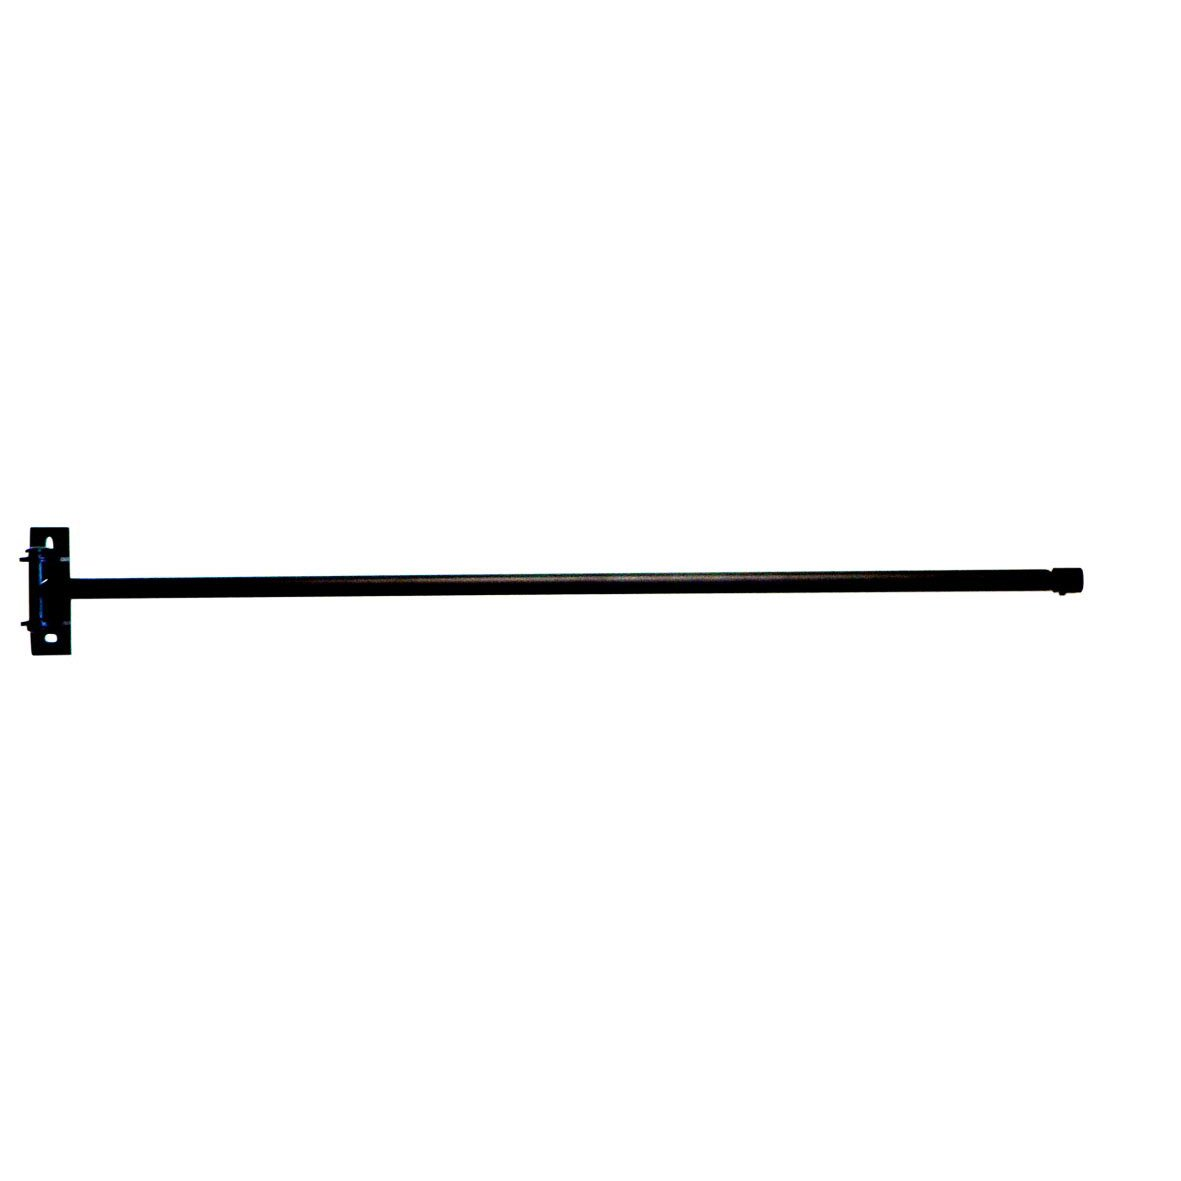 Barre de lucarne city noir mat de 60 110 cm ib leroy for Tringle pour fenetre de toit